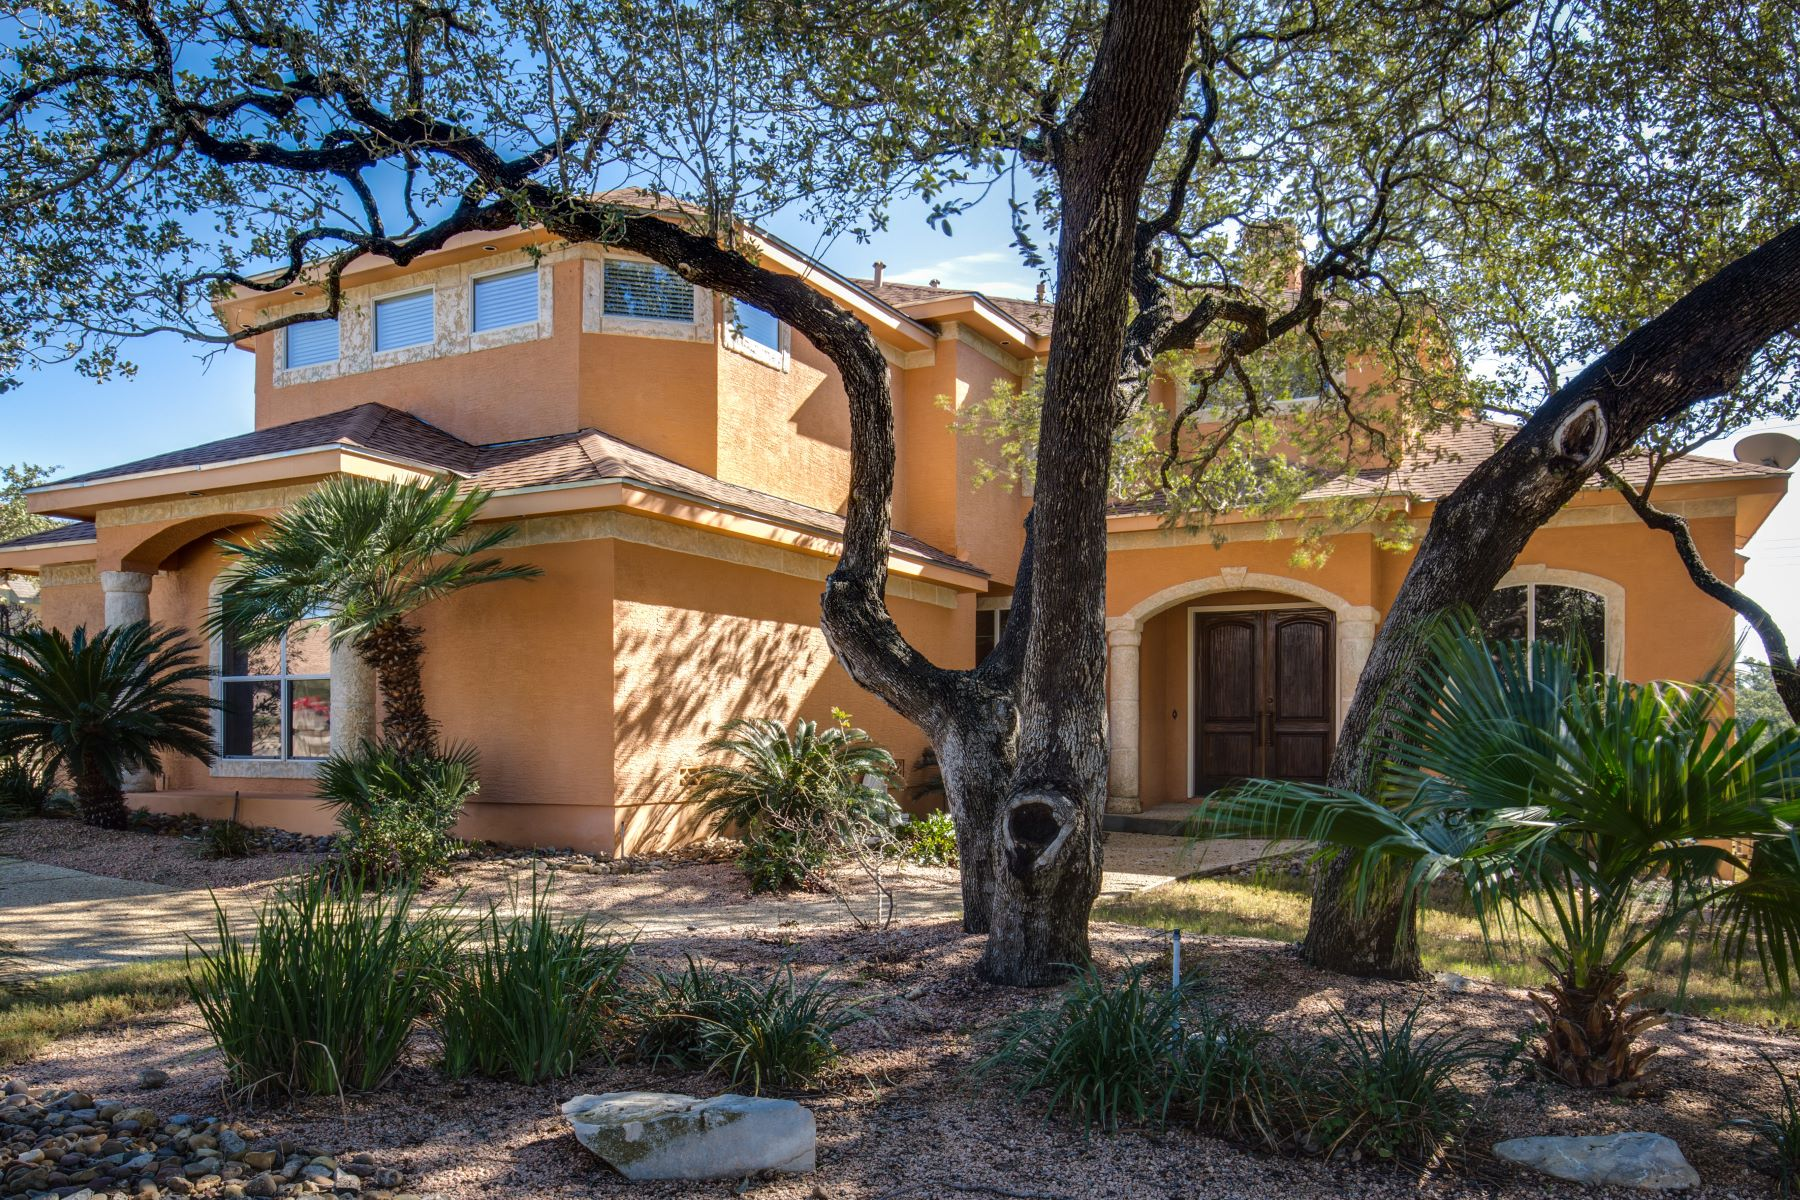 Single Family Home for Sale at Expansive Escape in the Village at Cactus Bluff 1718 Cactus Bluff San Antonio, Texas 78258 United States